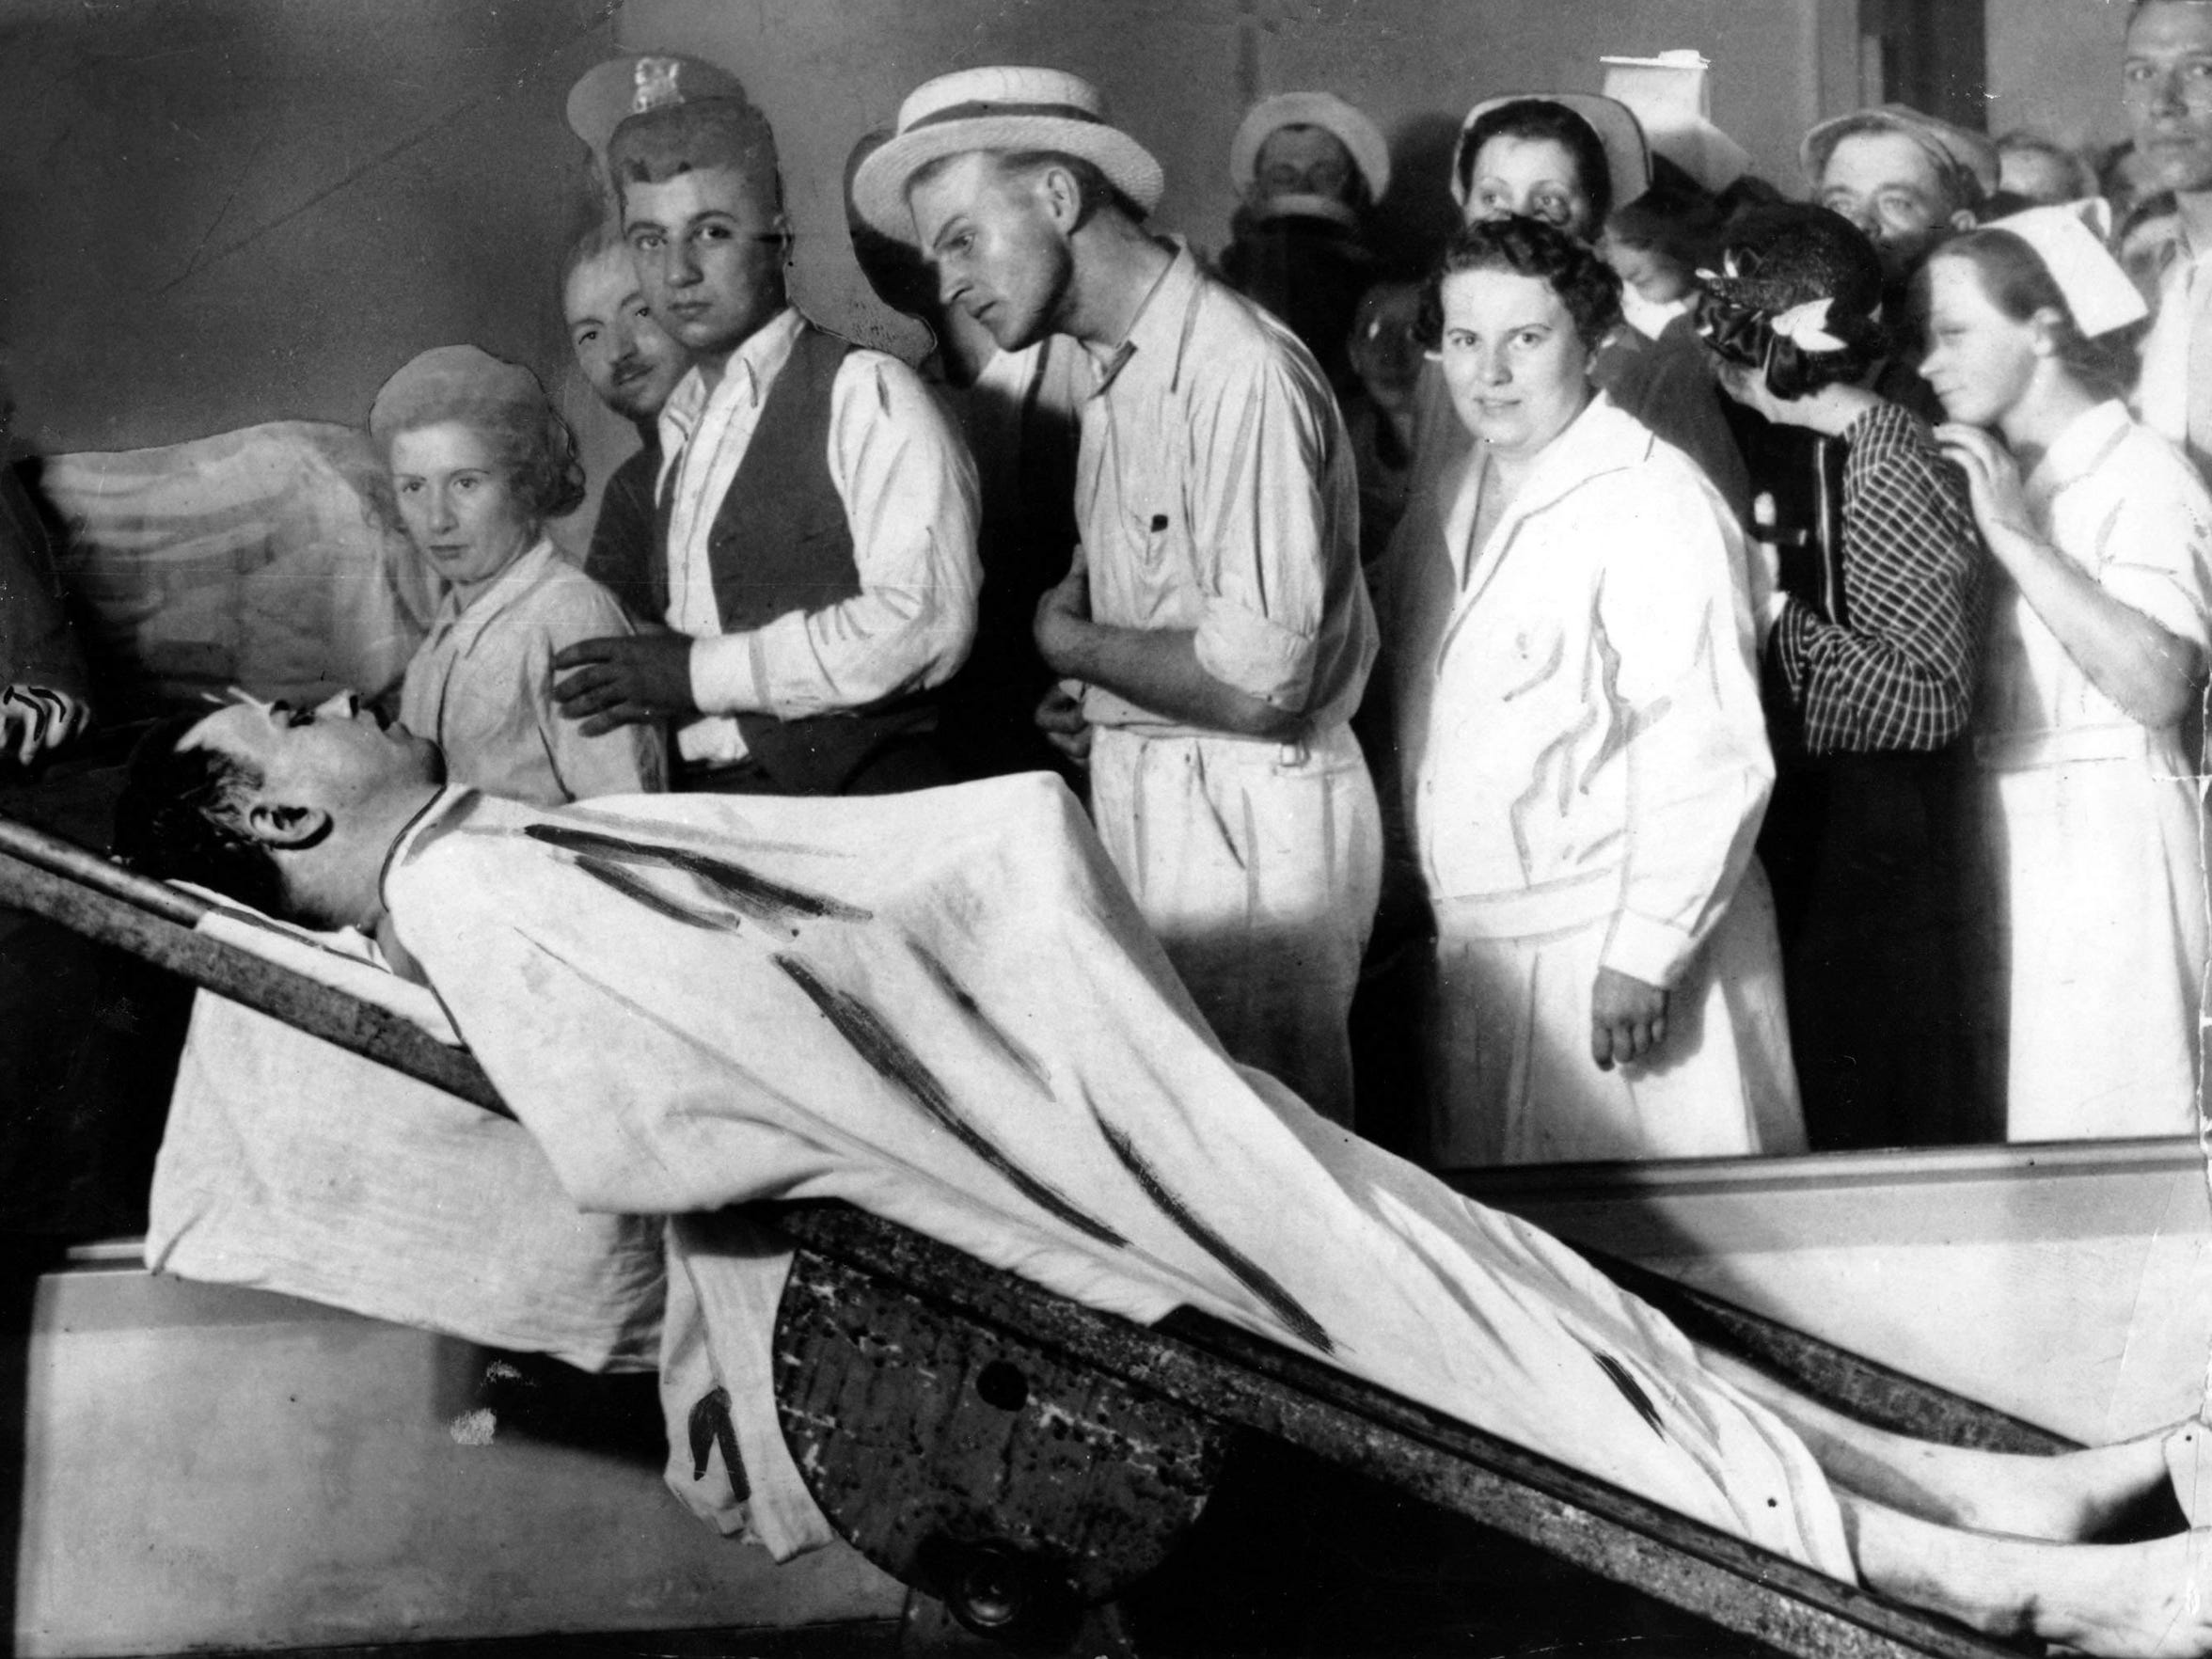 People view the body of gangster John Dillinger in